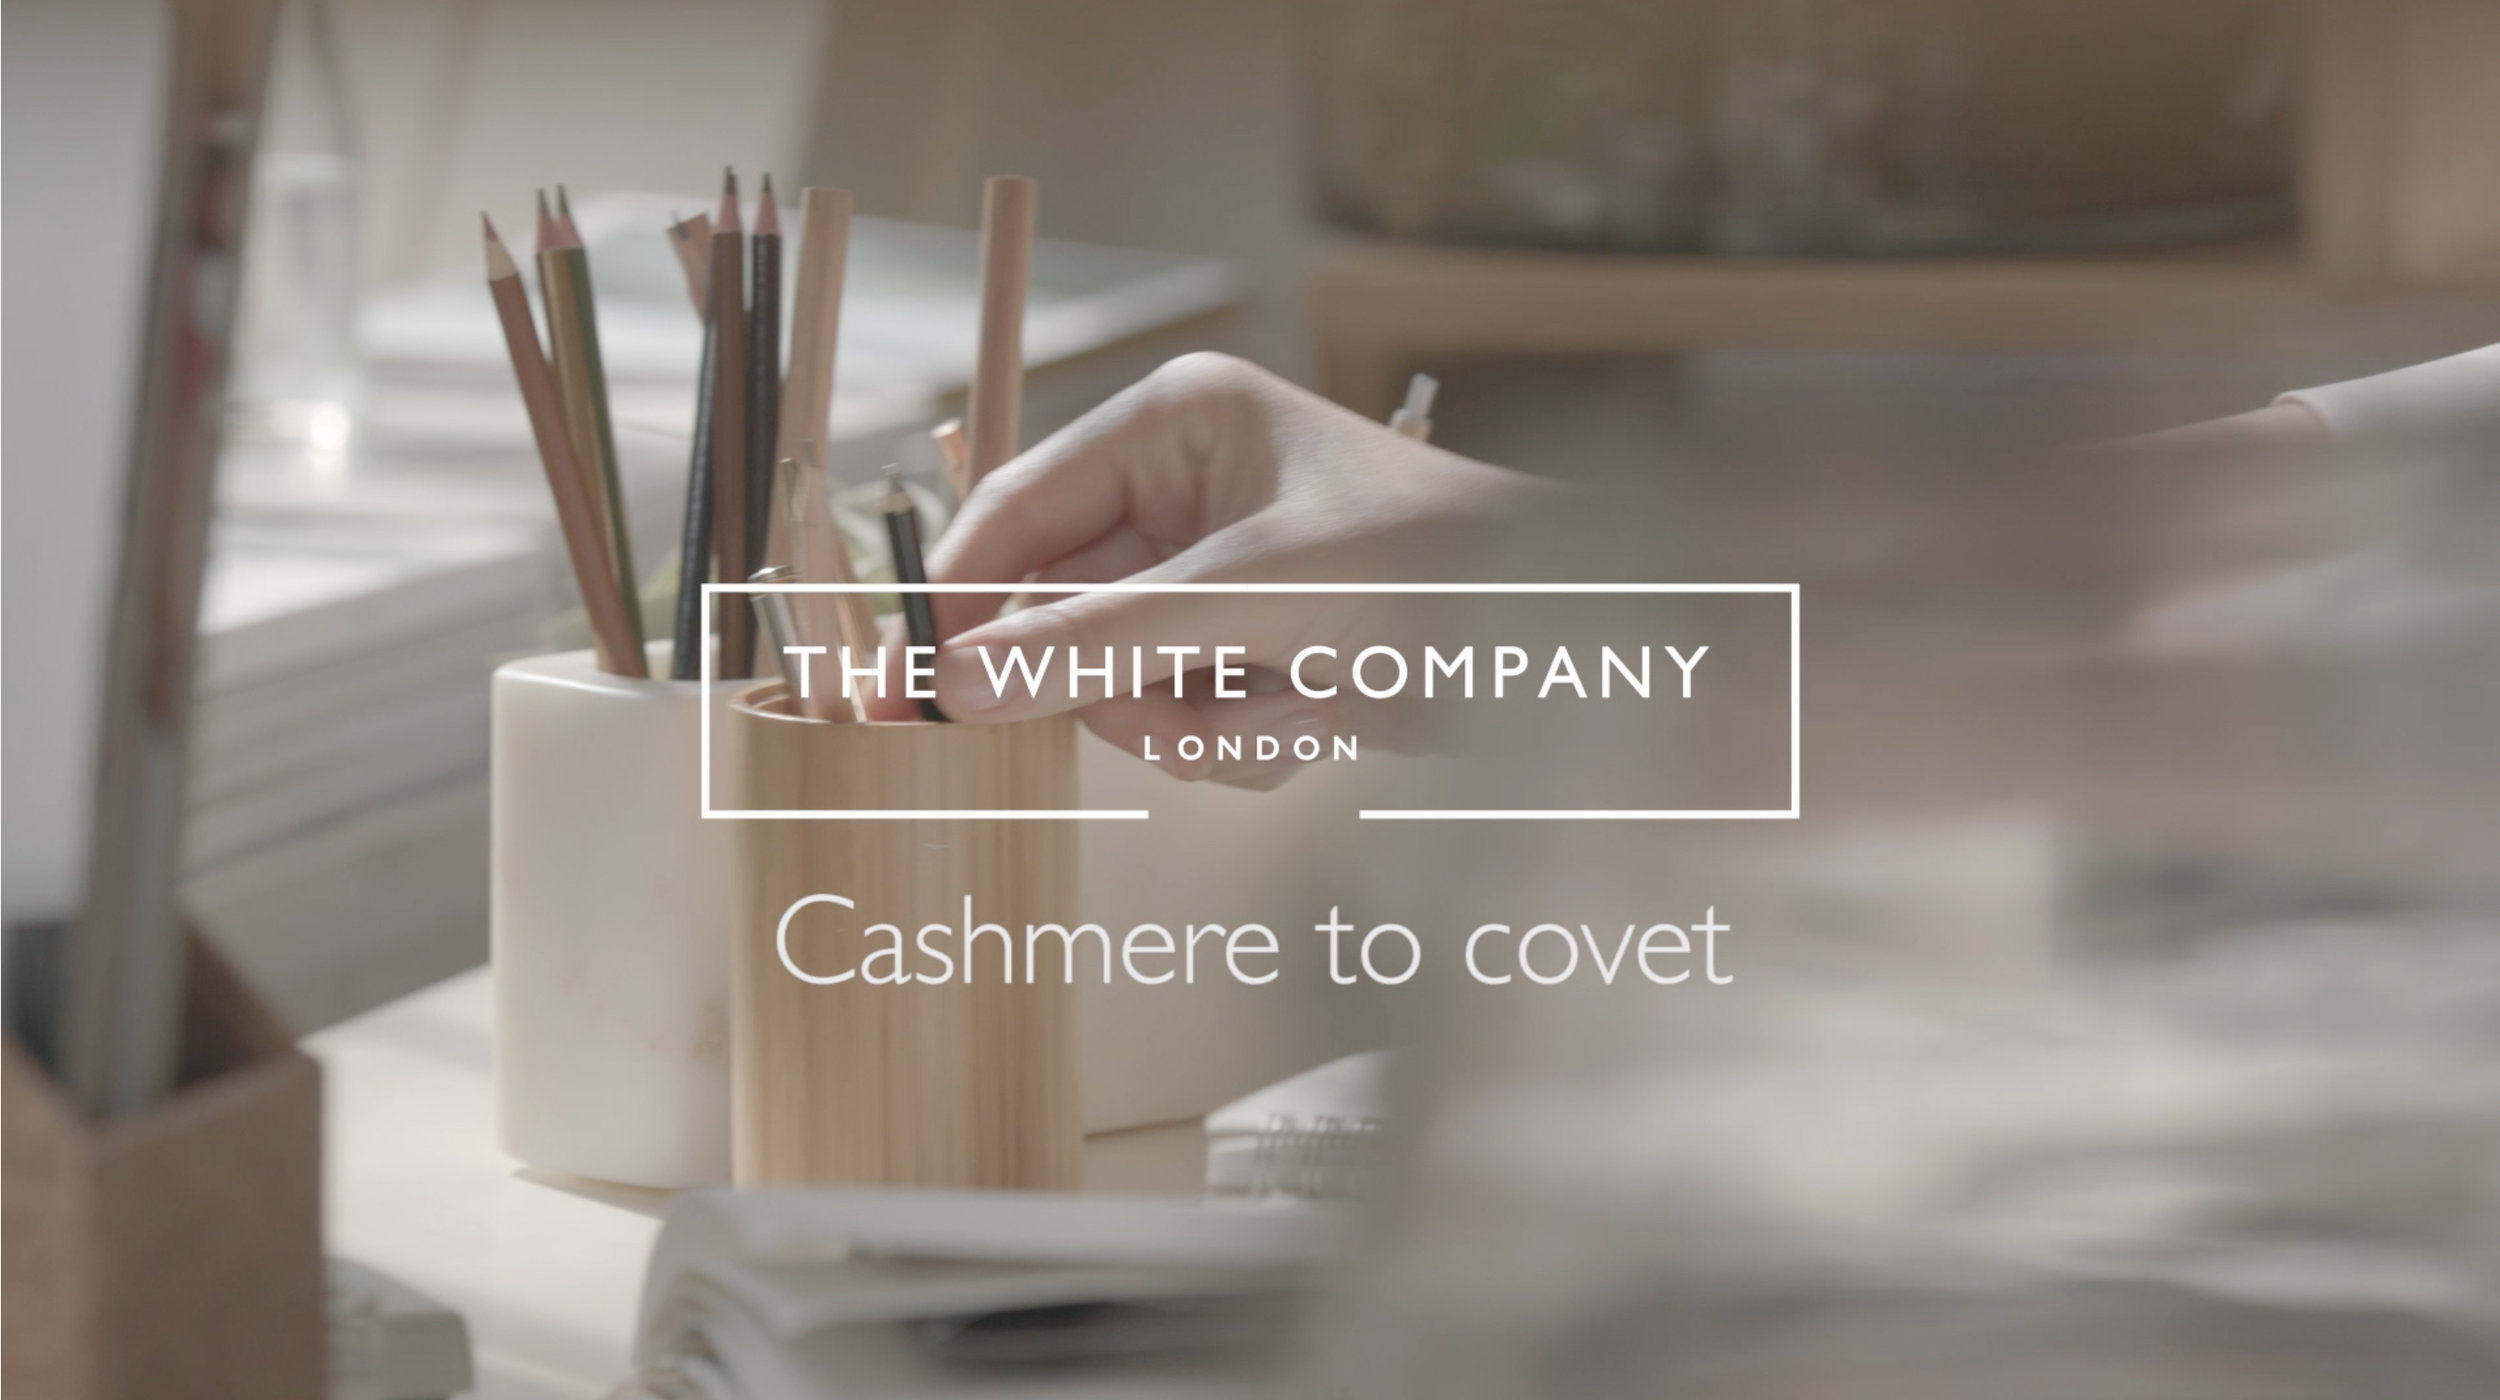 THE WHITE COMPANY - COMMERCIAL